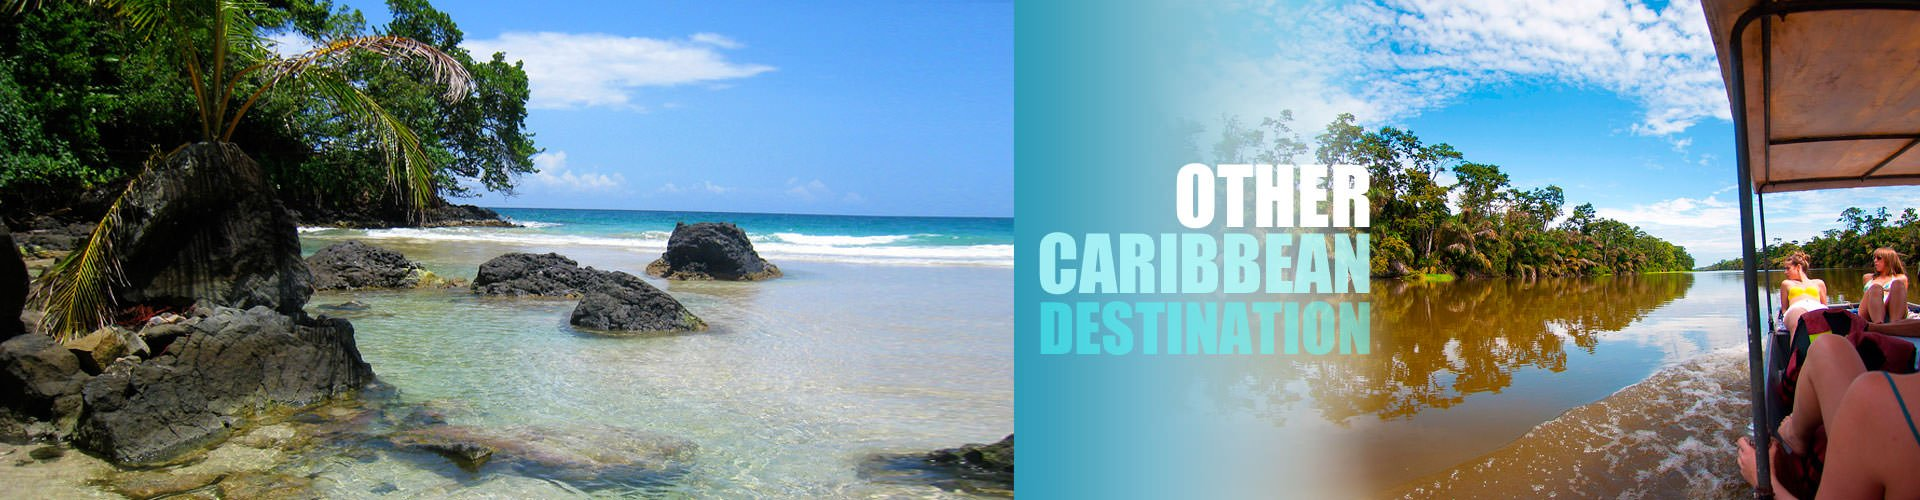 Other Caribbean Destinations